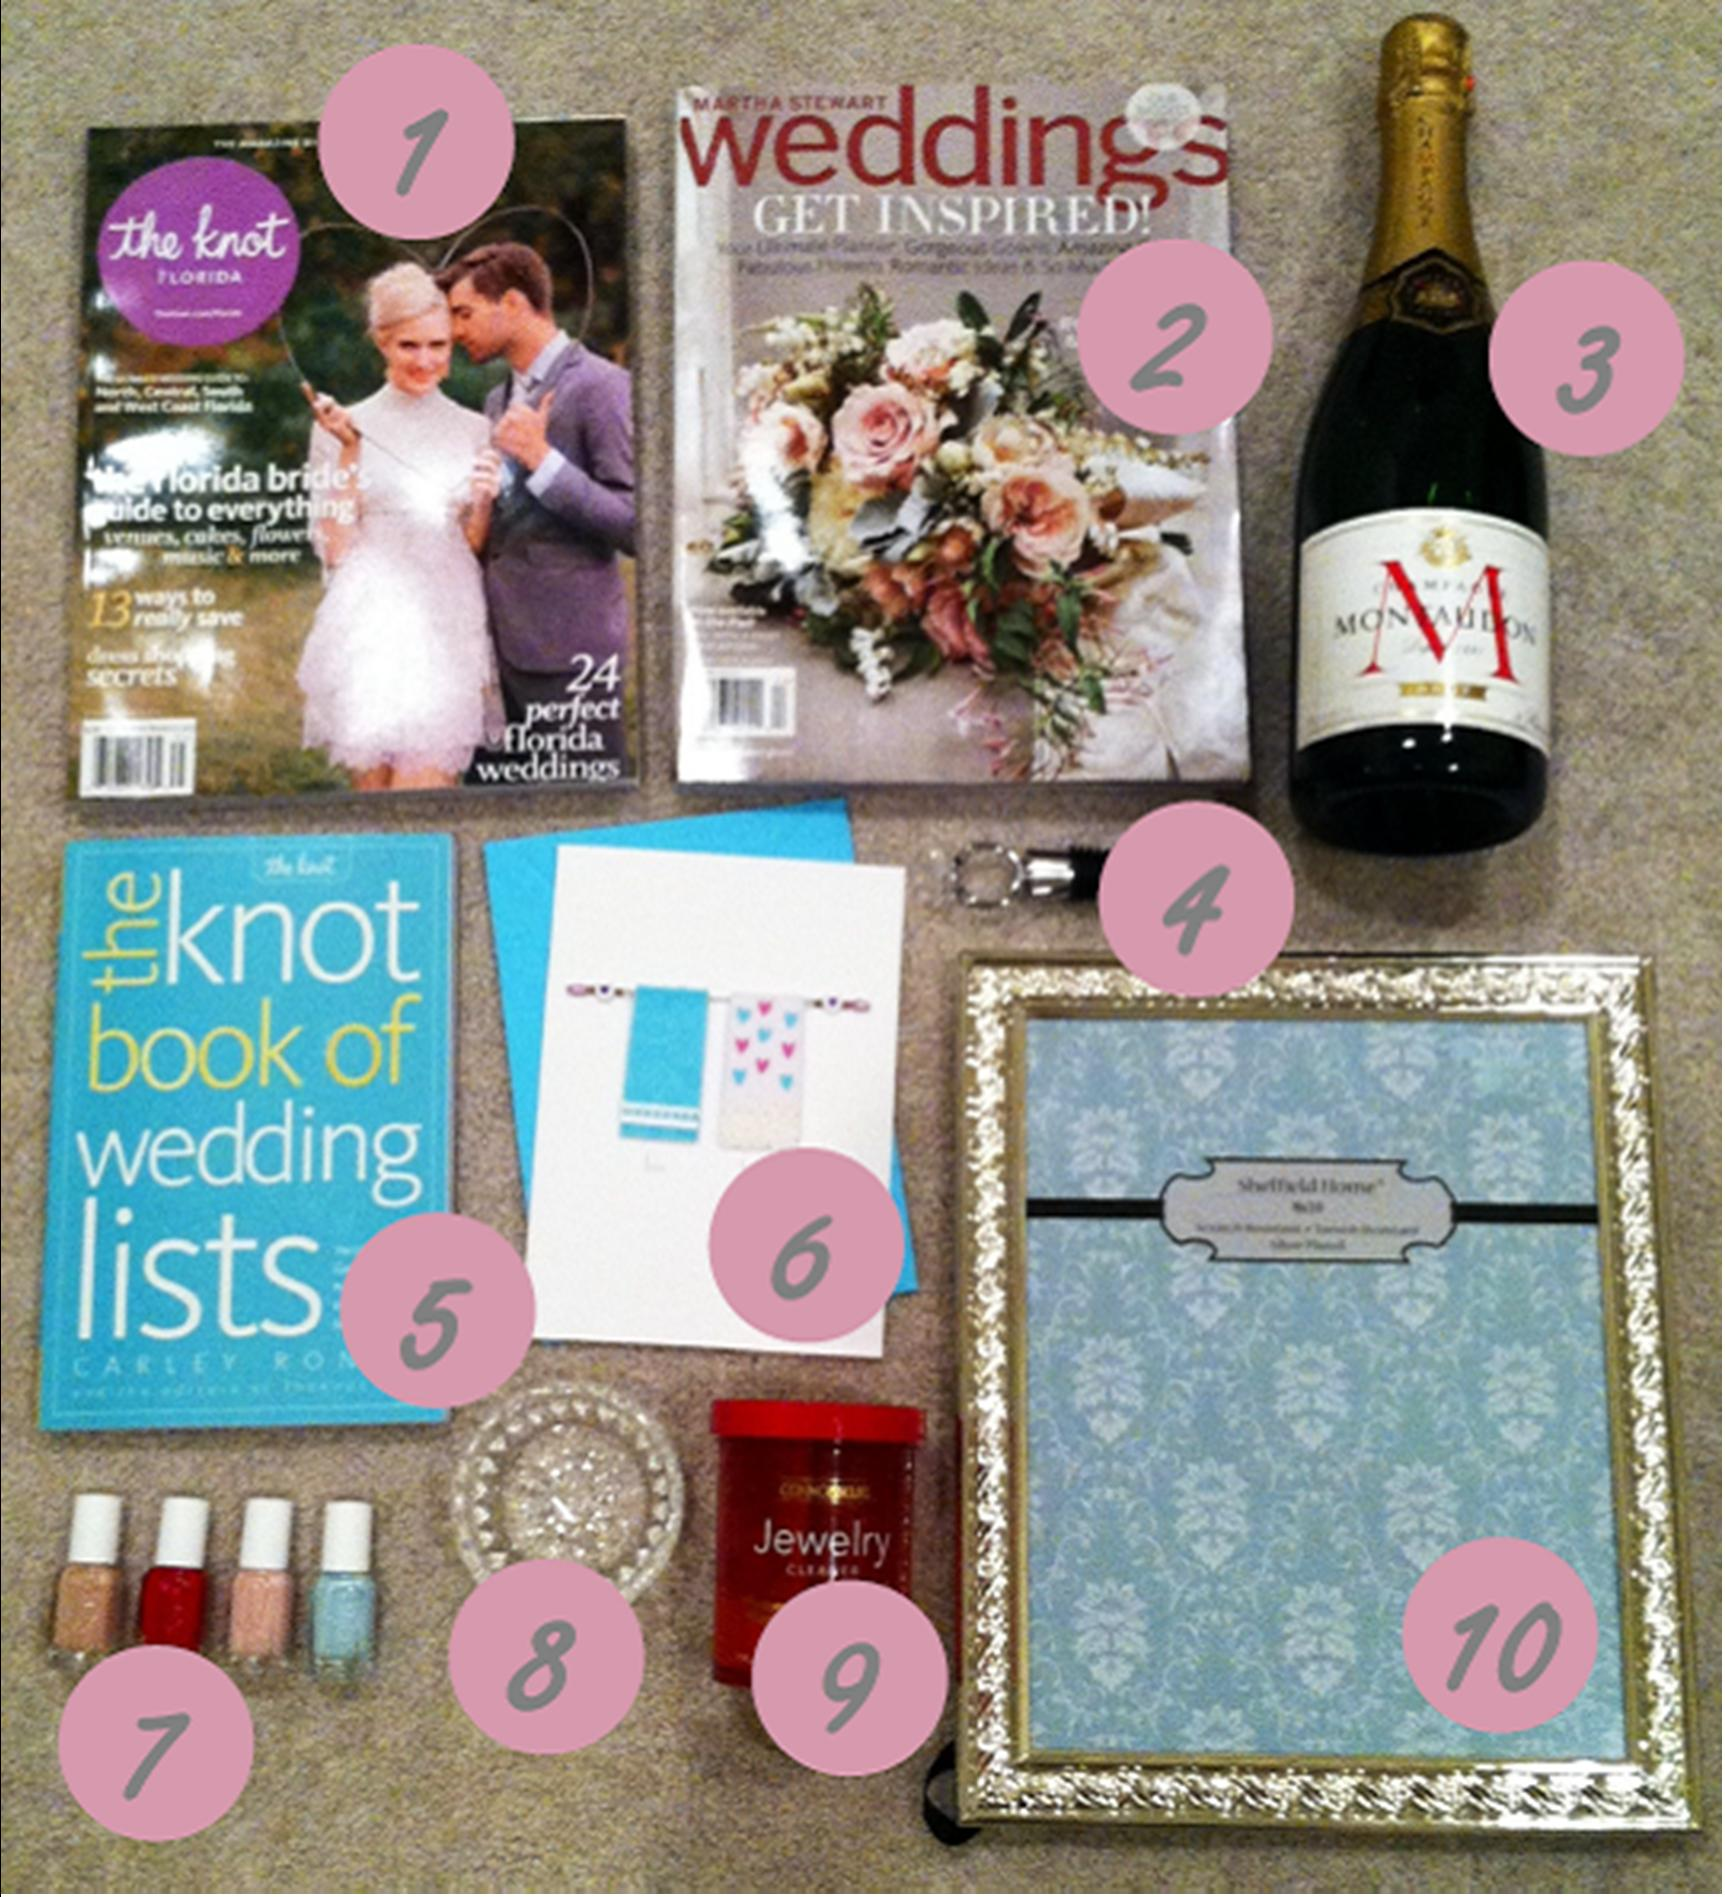 Wedding Gift For Friend Ideas : bridal magazine the knot 2 bridal magazine martha stewart